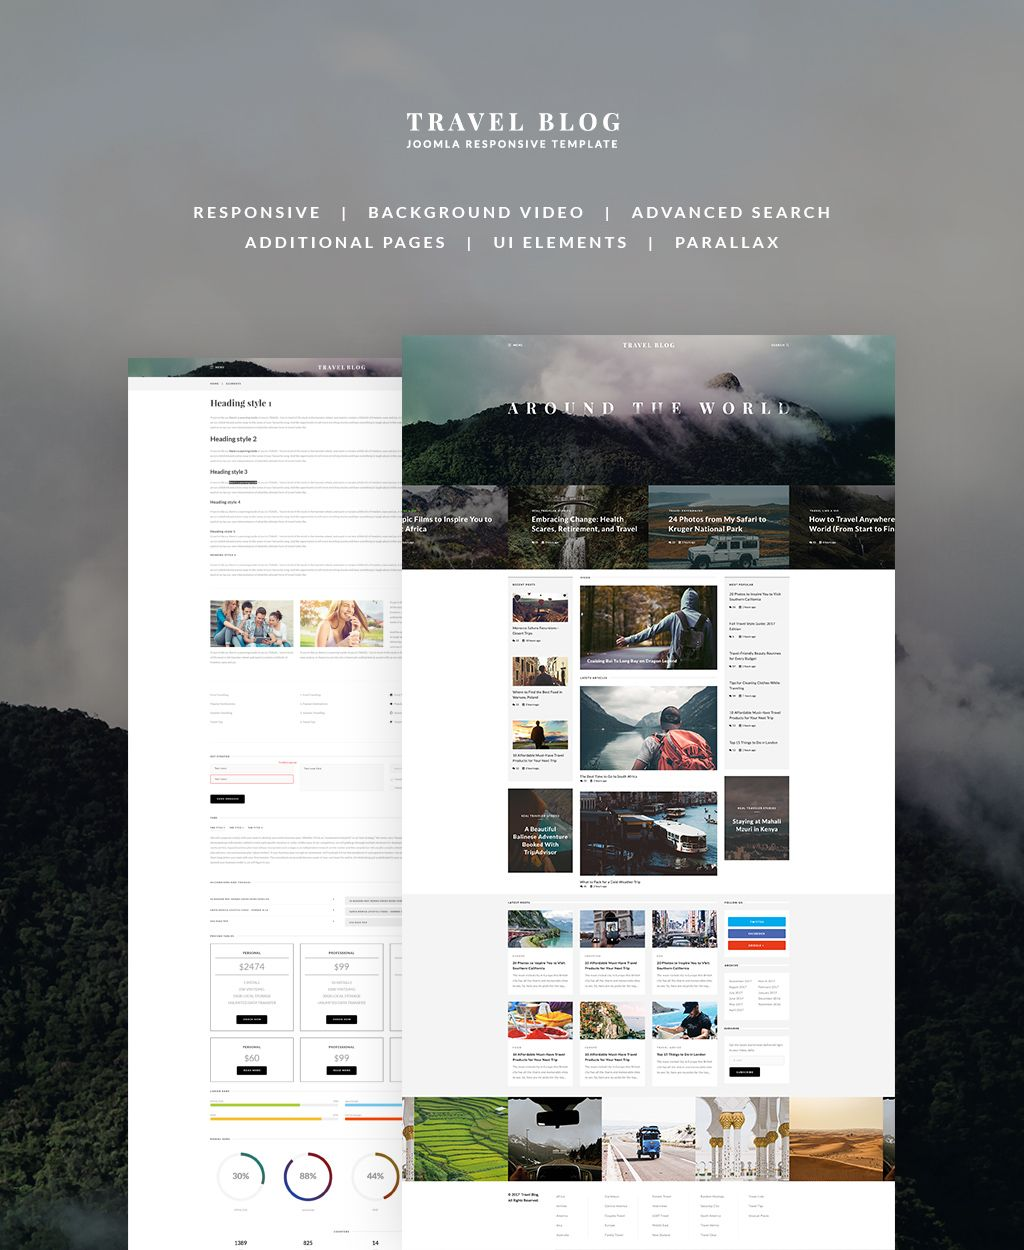 TravelBlog - Travel Guide Joomla Template | Template, Font search ...